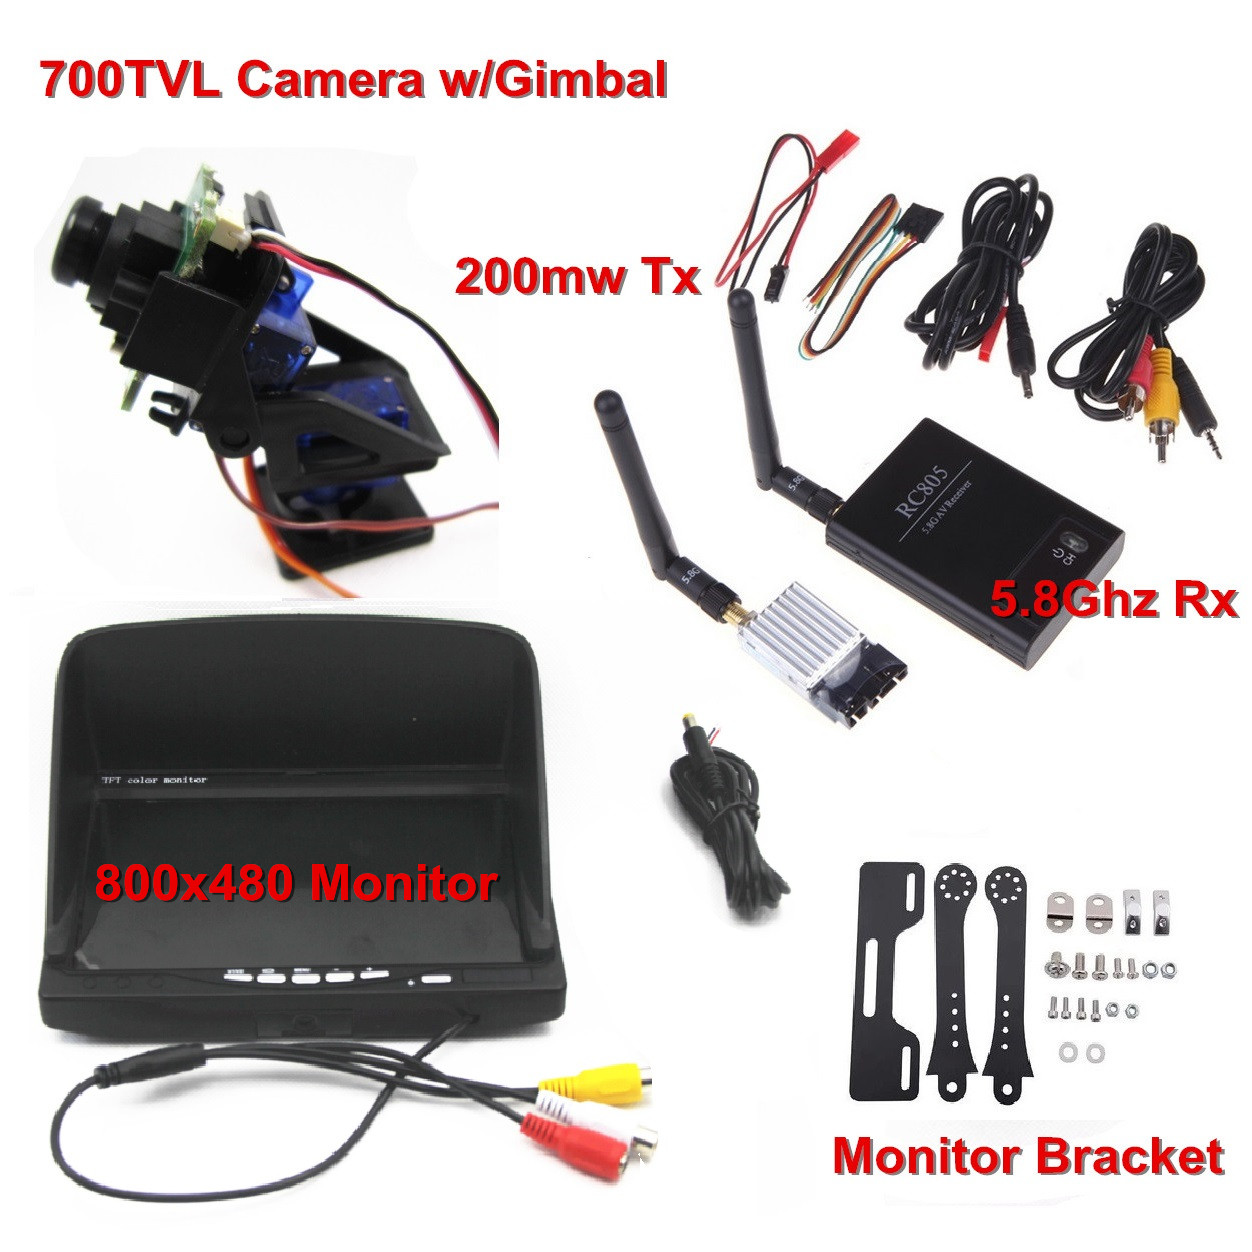 FPV Combo 5.8Ghz FPV System 700TVL camera w/gimbal 5.8Ghz Rx and 200mw Tx and 800x480 Monitor For FPV QuadcopterFPV Combo 5.8Ghz FPV System 700TVL camera w/gimbal 5.8Ghz Rx and 200mw Tx and 800x480 Monitor For FPV Quadcopter